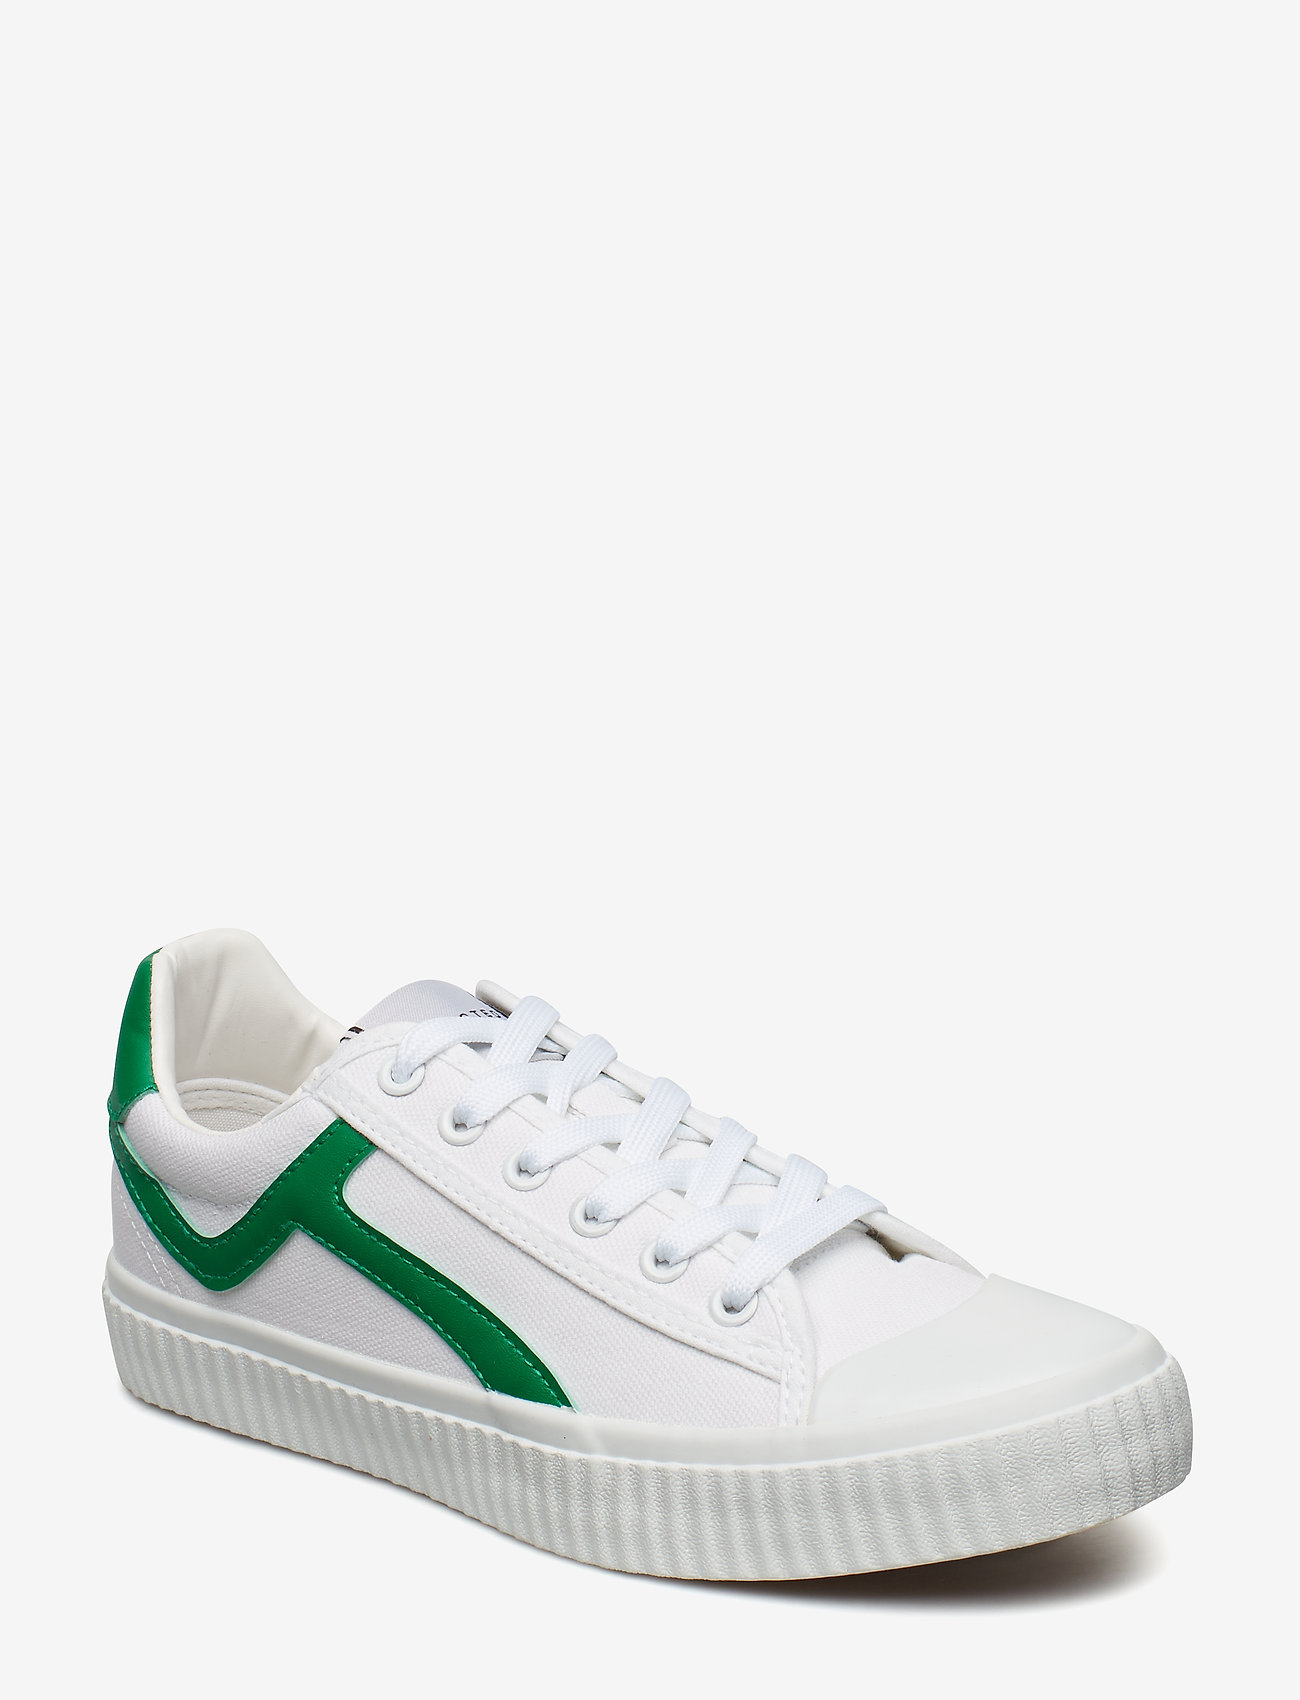 Selected Femme - SLFERICA CANVAS TRAINER B - lave sneakers - gumdrop green - 0